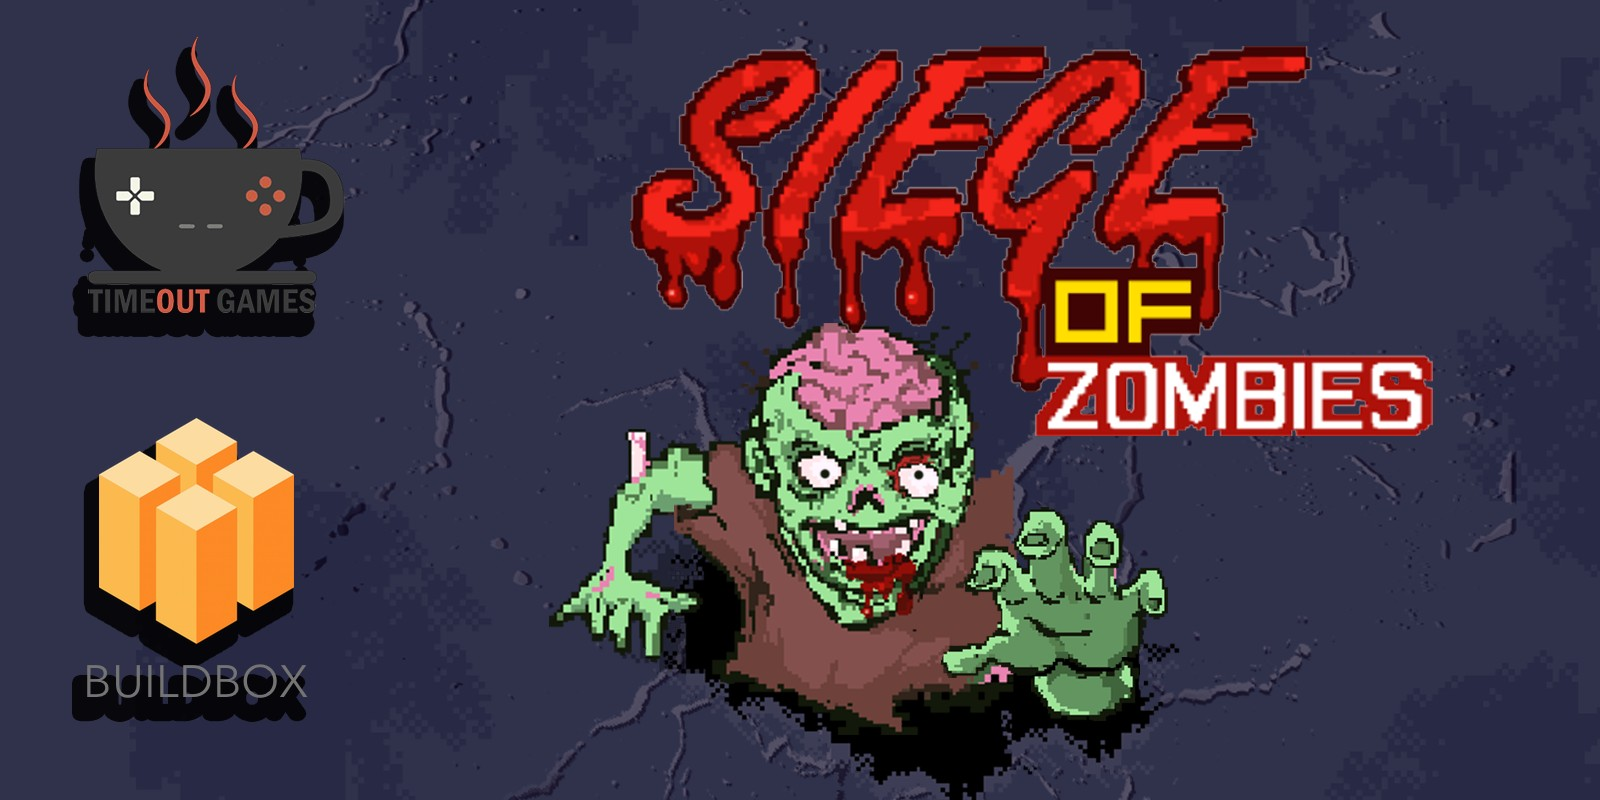 Siege of Zombies - Buildbox Game Template